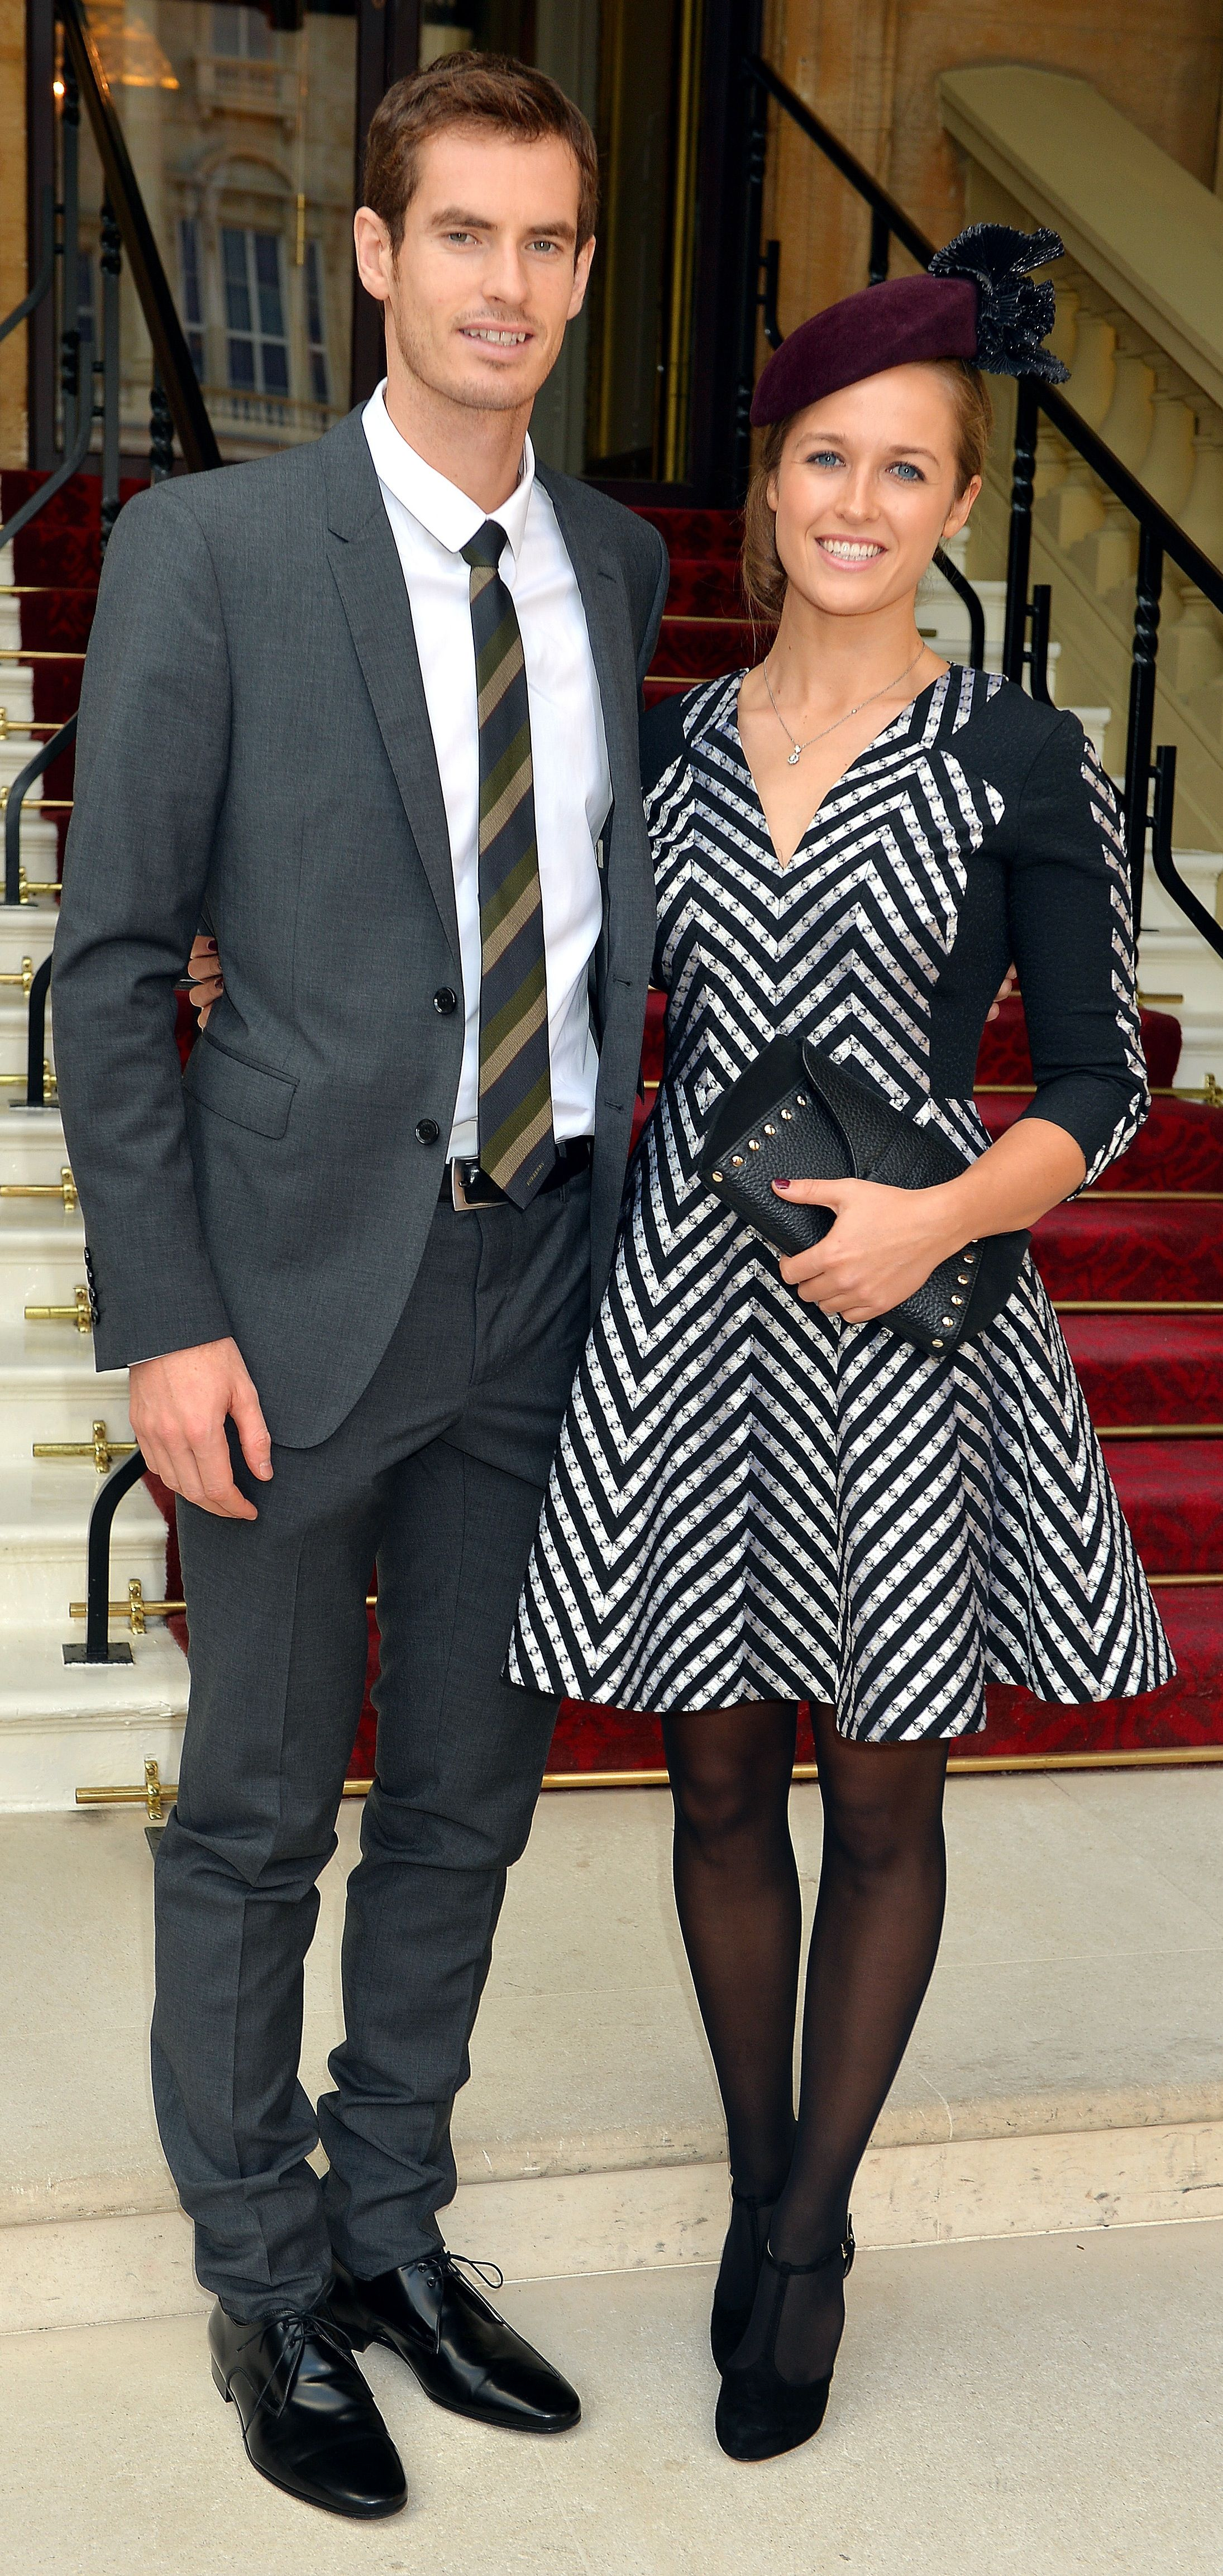 c59c120421 British tennis player Andy Murray wearing Burberry tailoring to receive his  OBE at Buckingham Palace in London